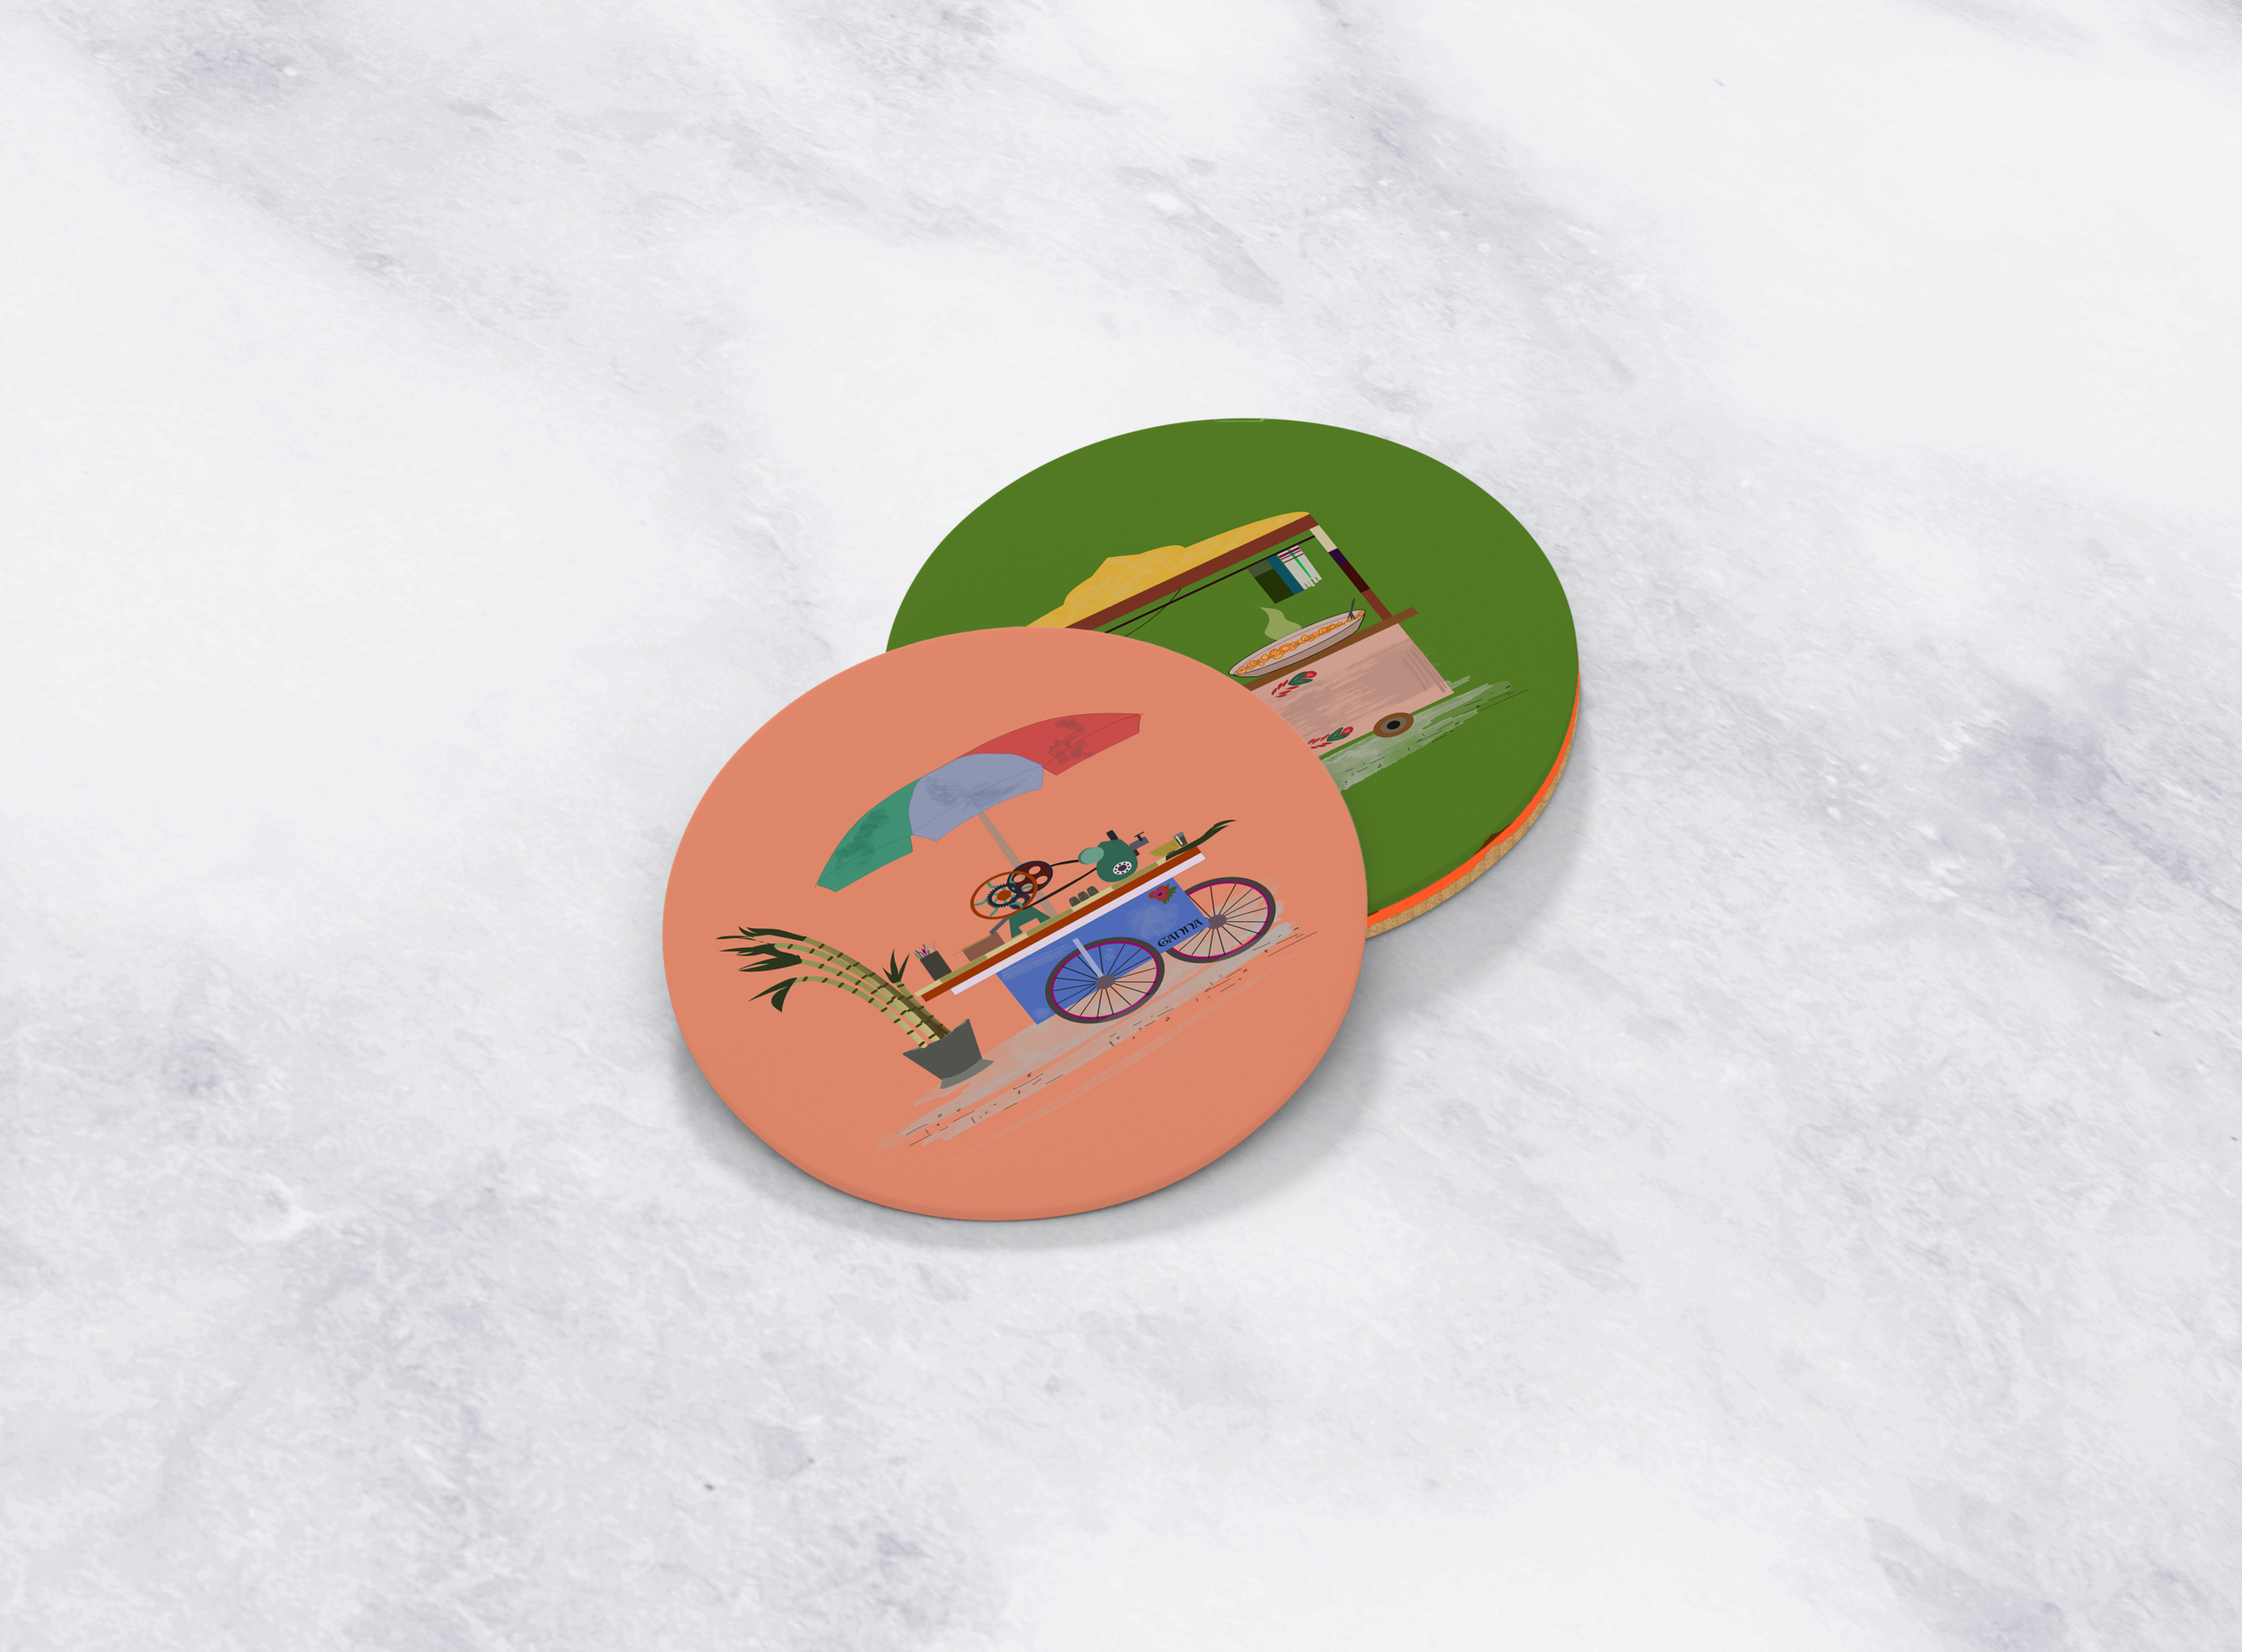 STREET FOOD coasters - a staple set of coasters perfect for your coffee table. QUIRKY AND VIBRANT food stalls REMINISCENT OF RURAL PAKISTAN AND INDIA